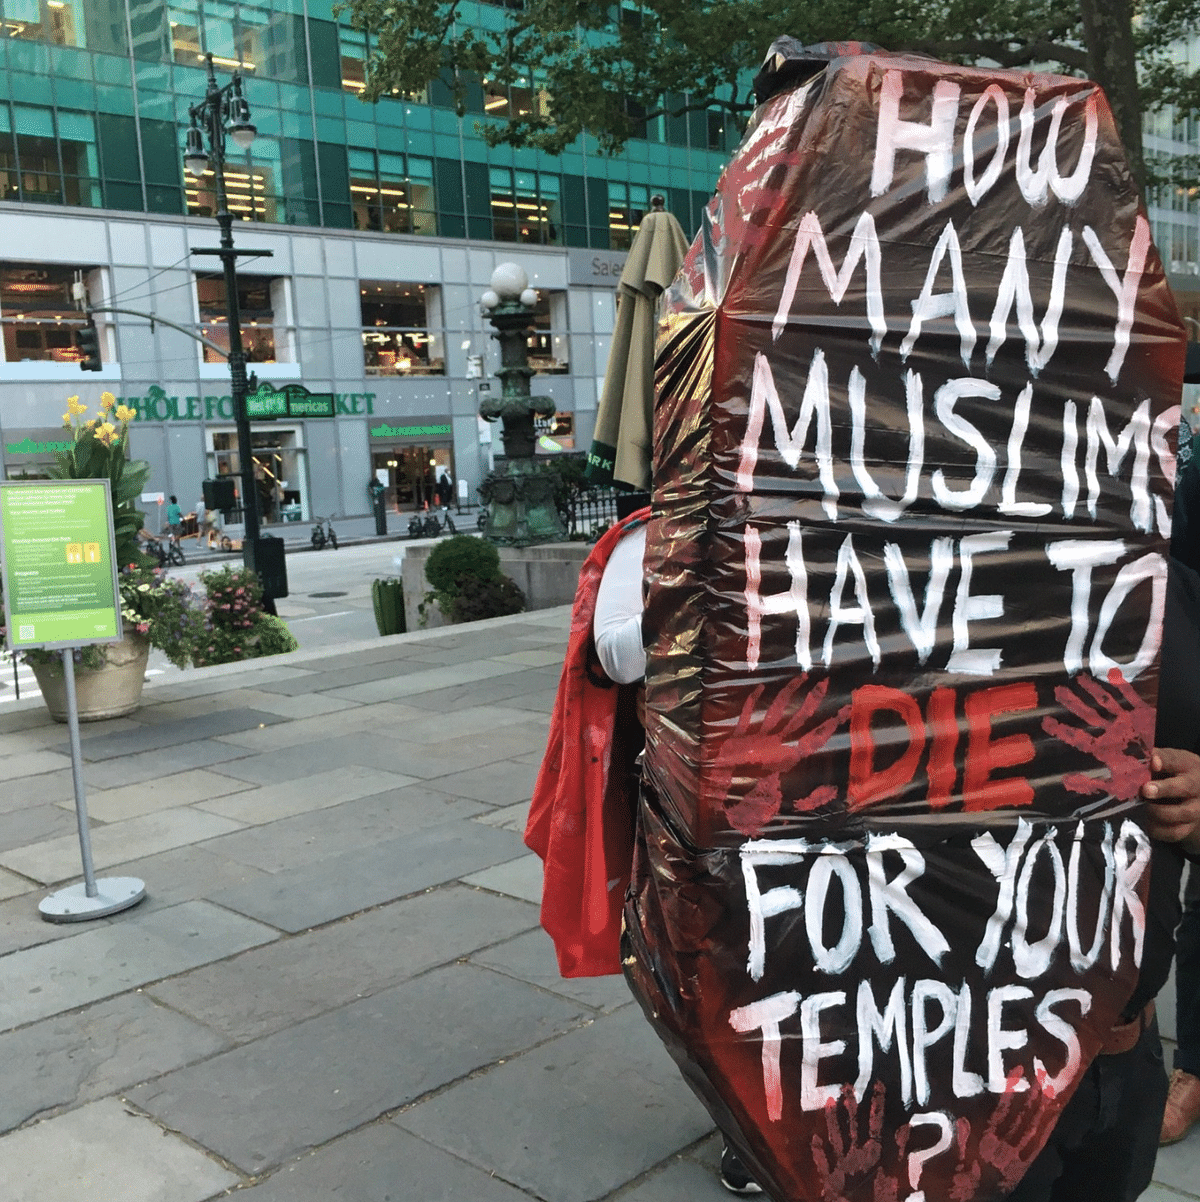 """Image from the protest against the Ram Mandir billboard in NYC of a coffin asking the question """"How many Muslims have to die for your temples?"""""""